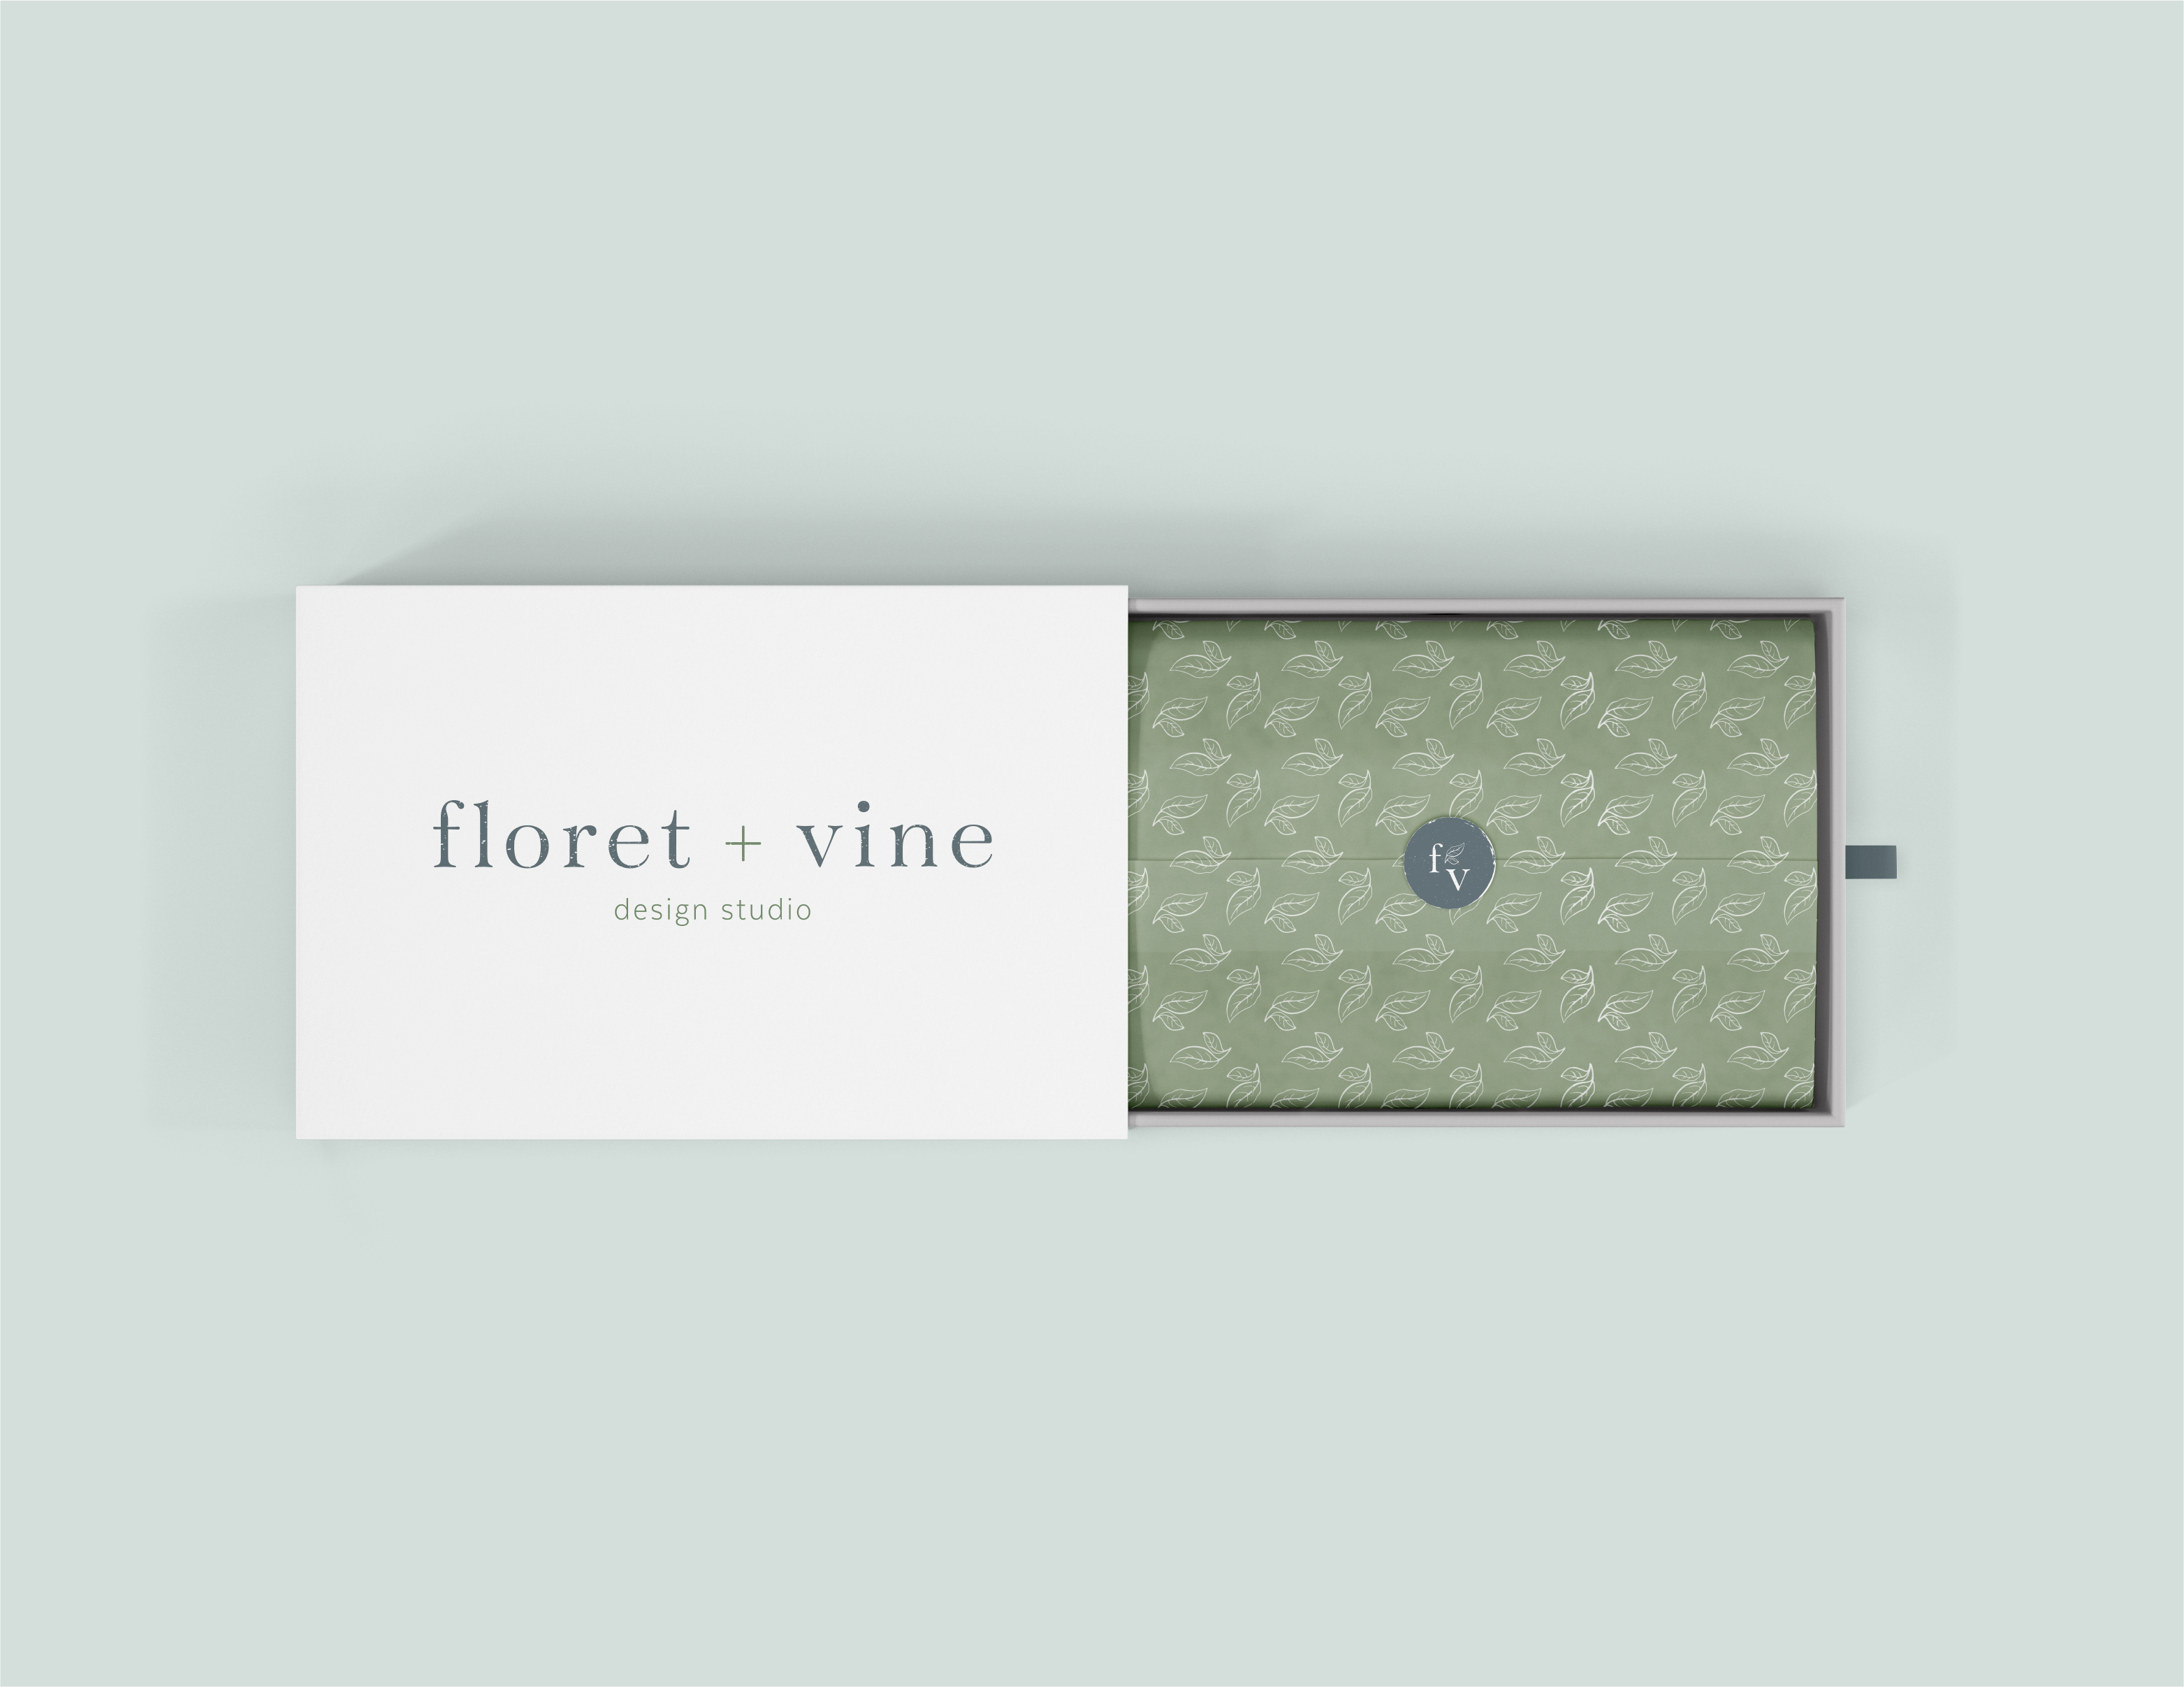 Brand & Web Design for Floret + Vine - Florist Branding, Floral Design Branding, Brand and Web Design for Floristg